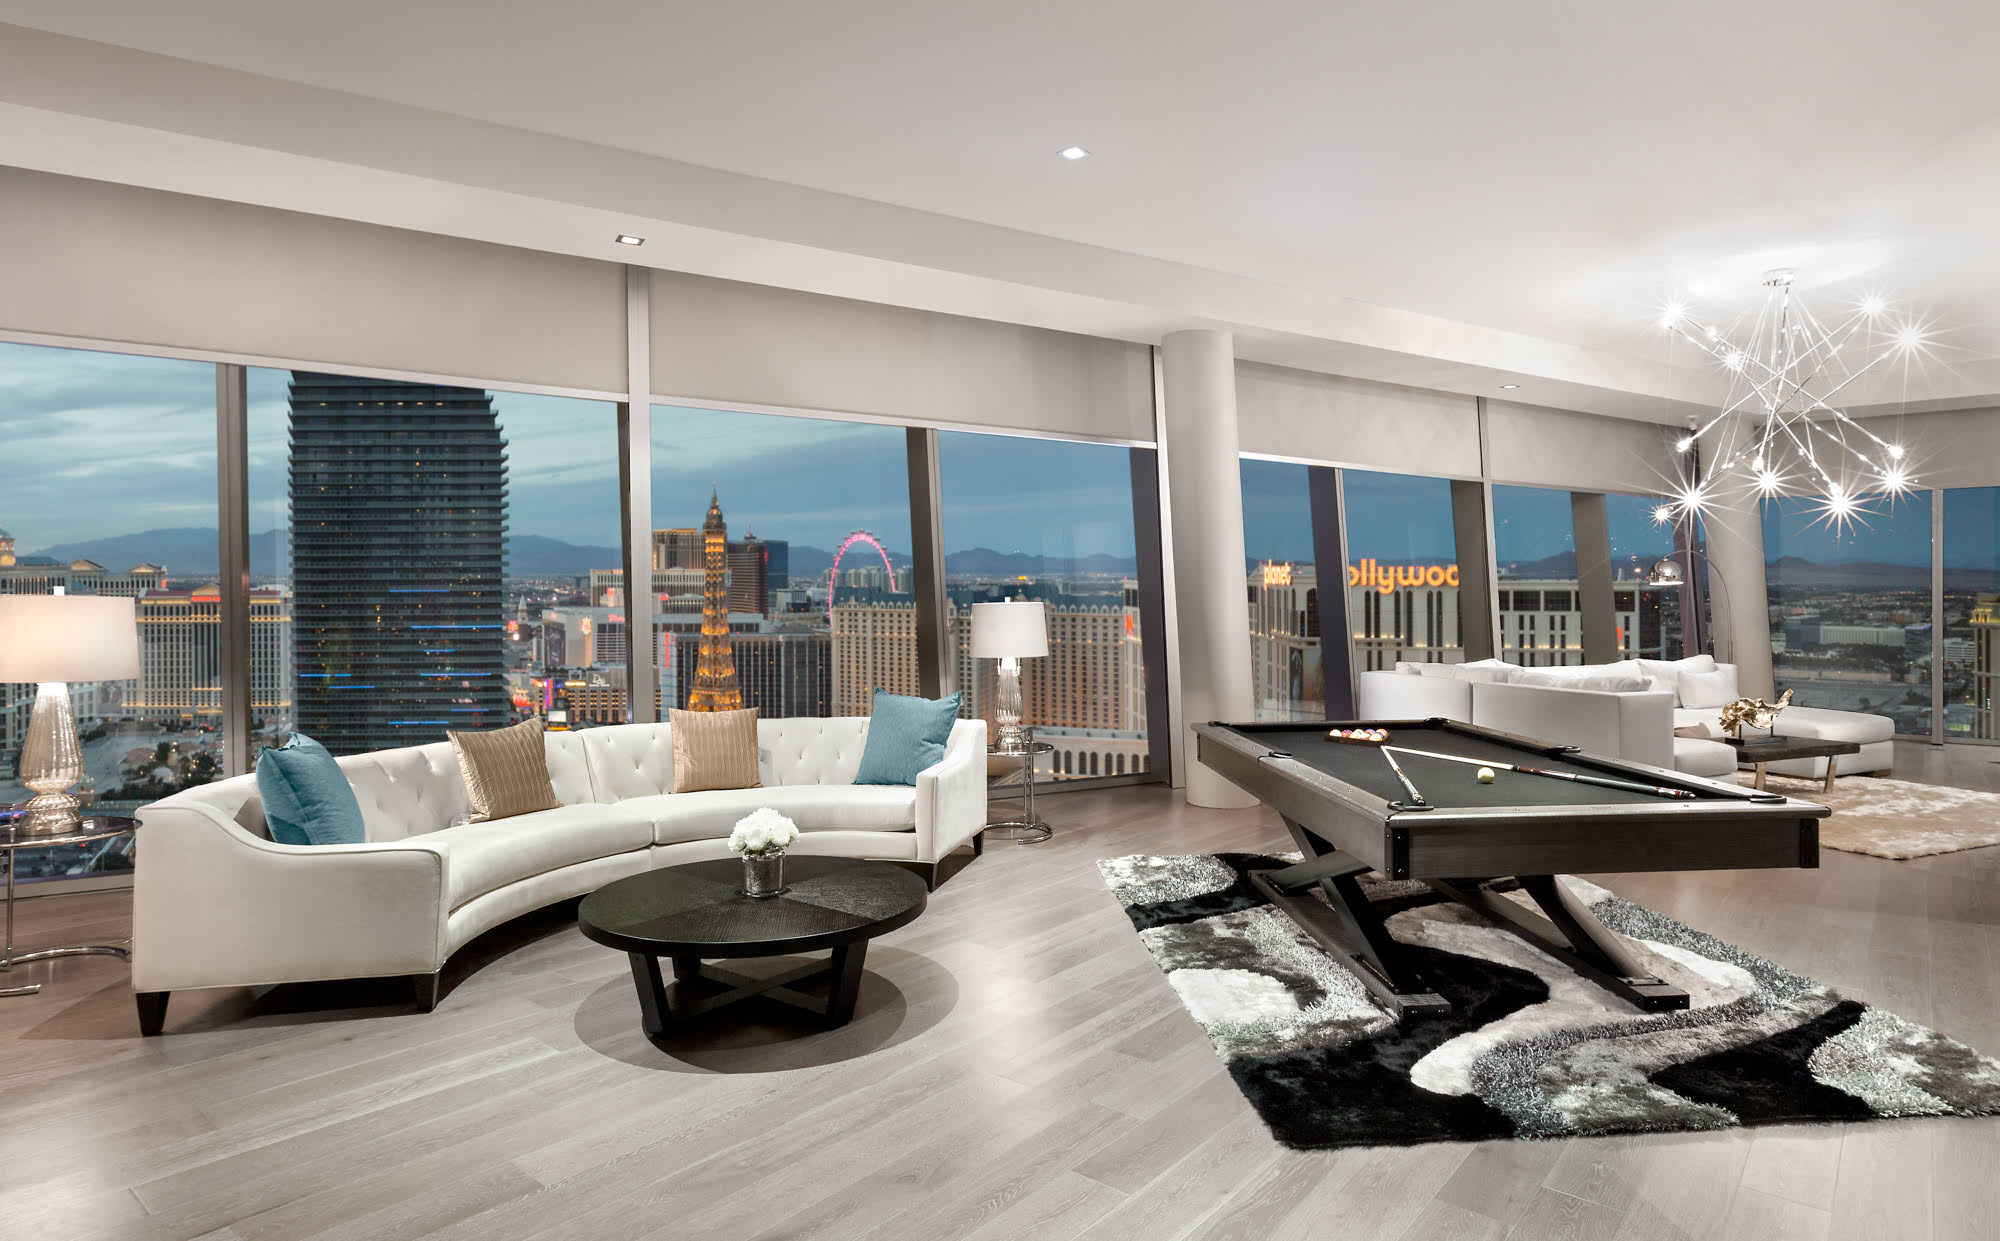 Apartment Buildings In Las Vegas For Sale